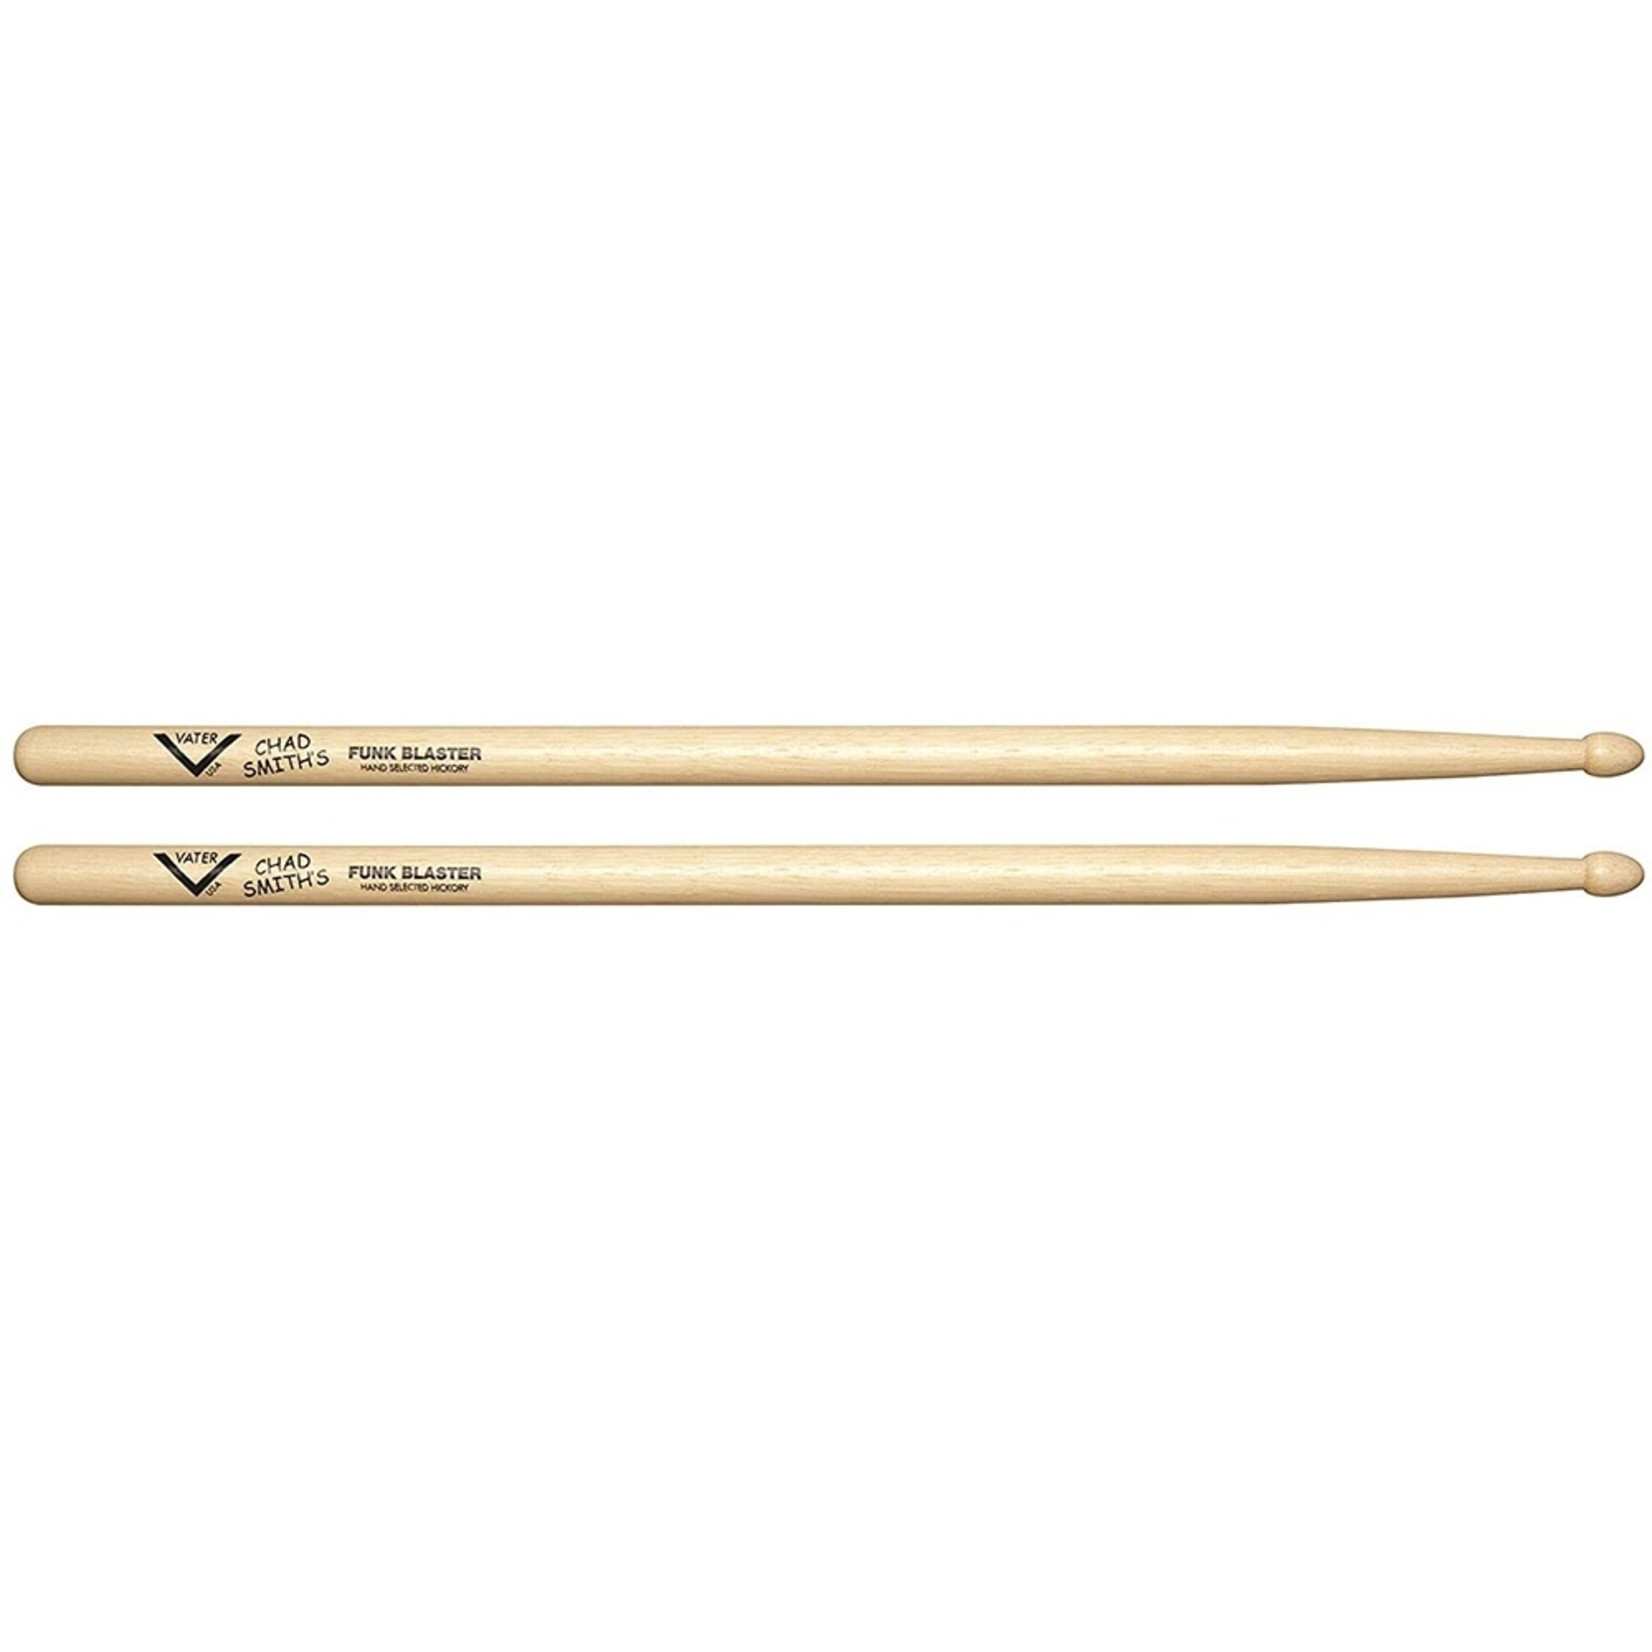 Vater Vater Chad Smith's Funk Blaster